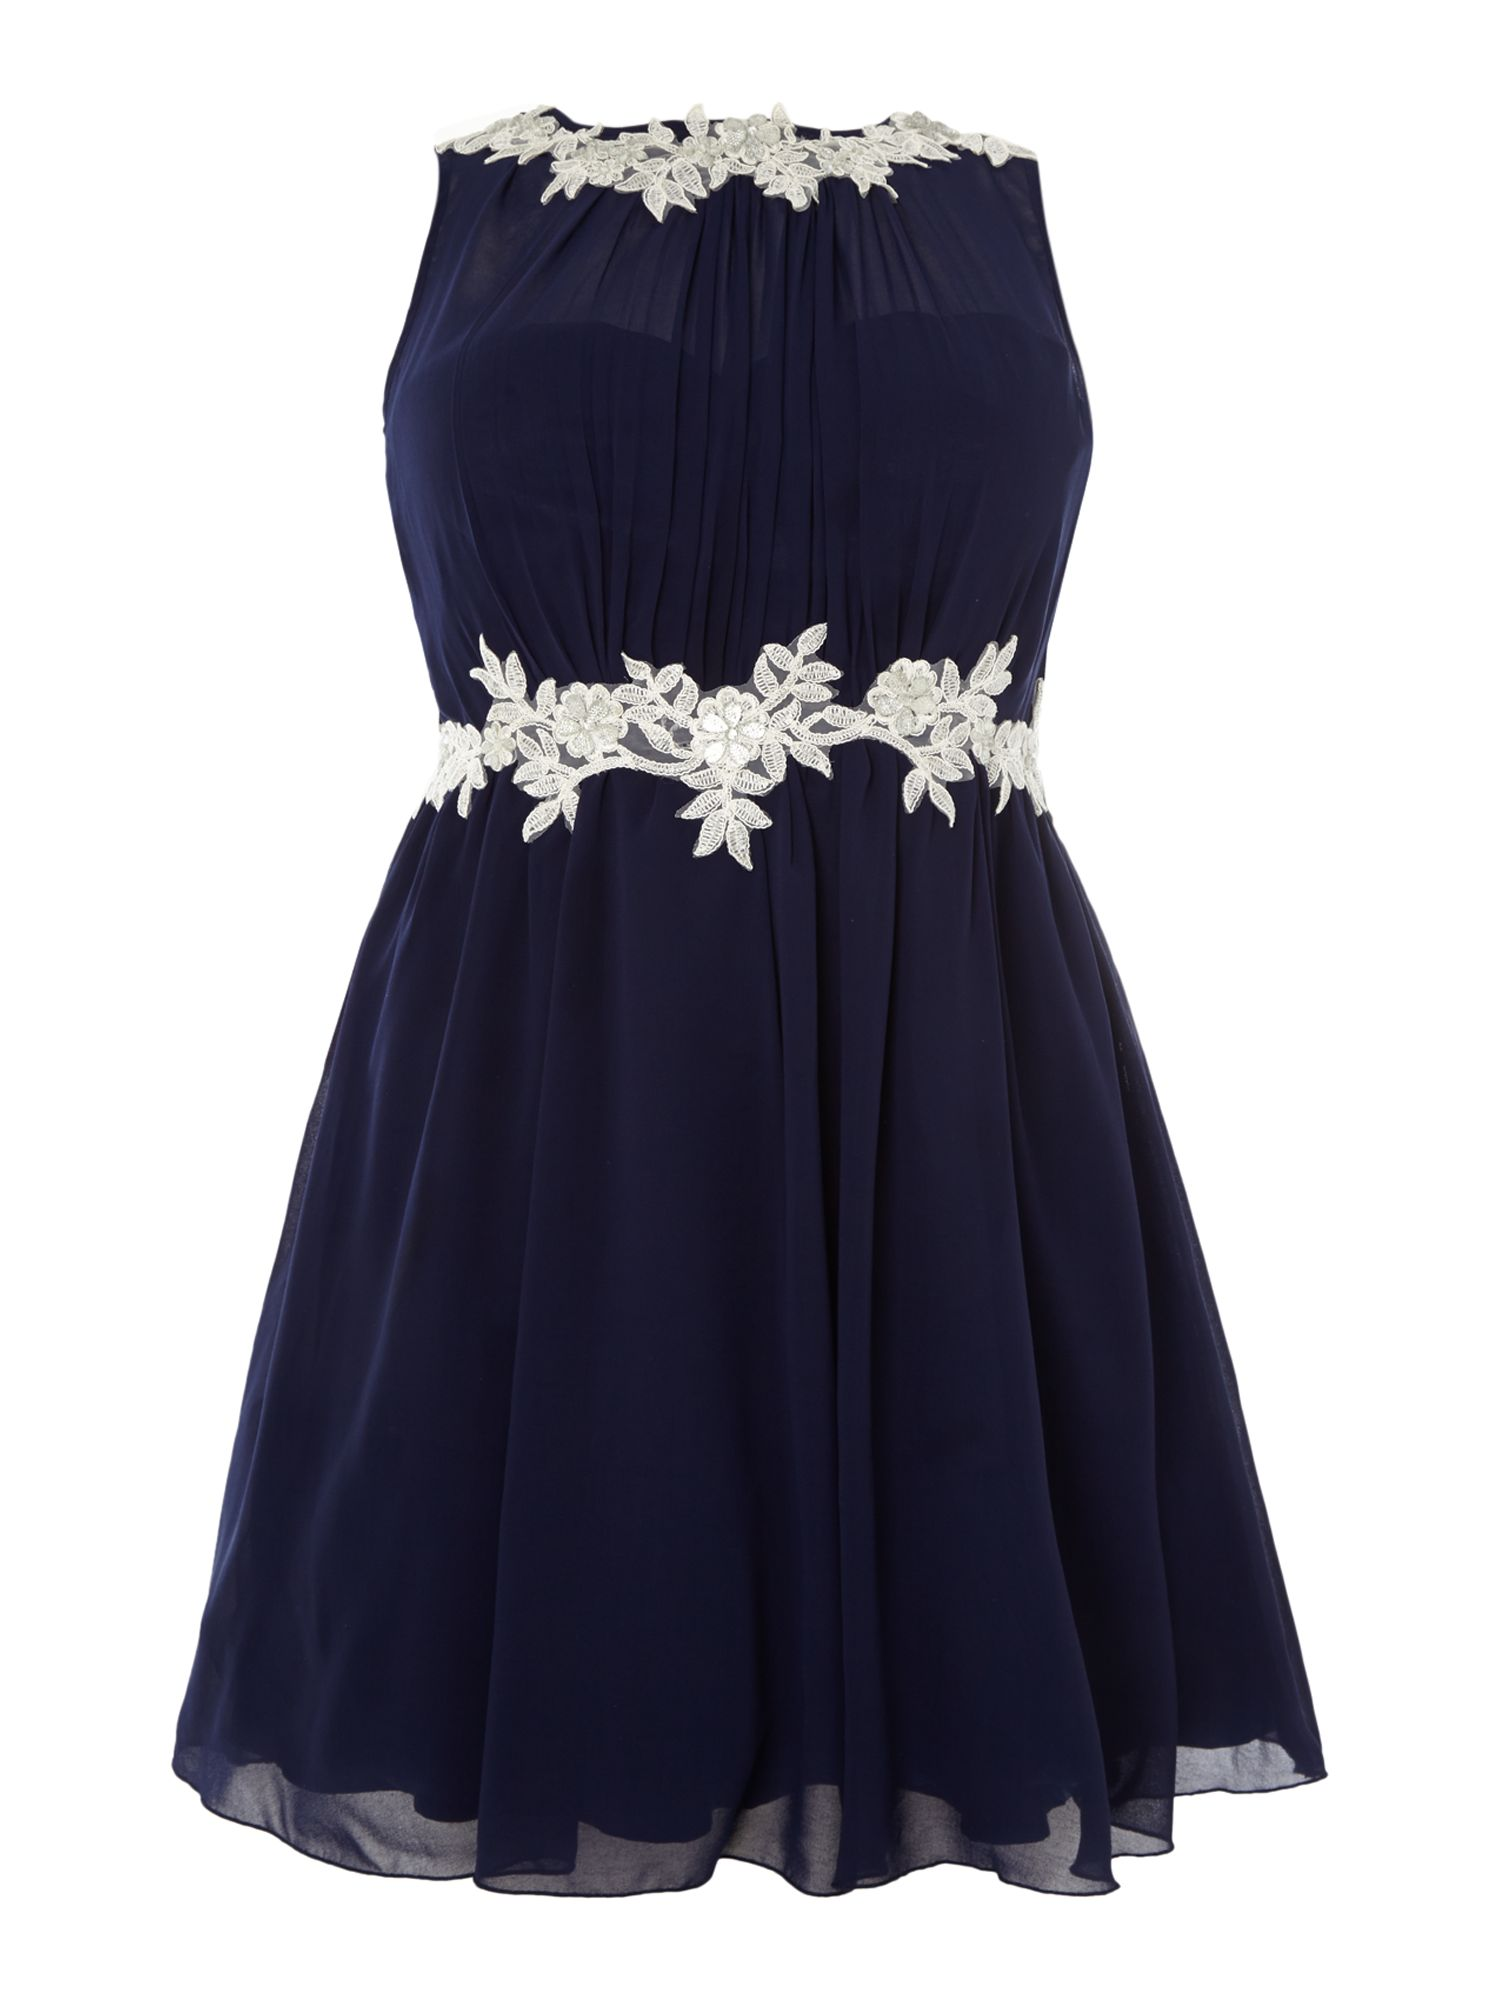 Cap sleeved applique detail fit and flare dress